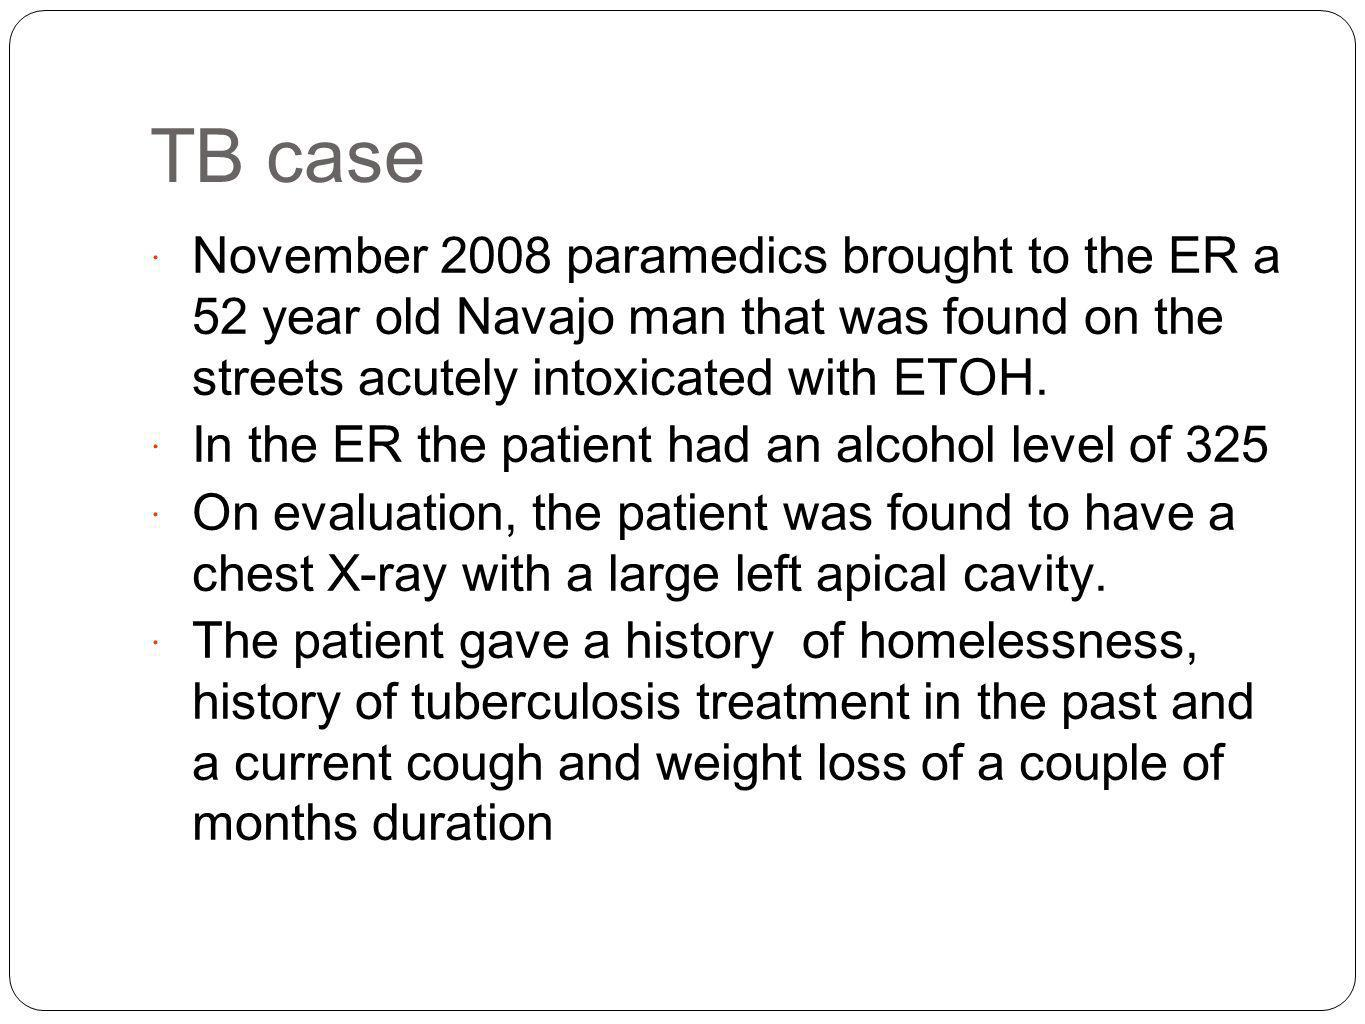 TB case November 2008 paramedics brought to the ER a 52 year old Navajo man that was found on the streets acutely intoxicated with ETOH.